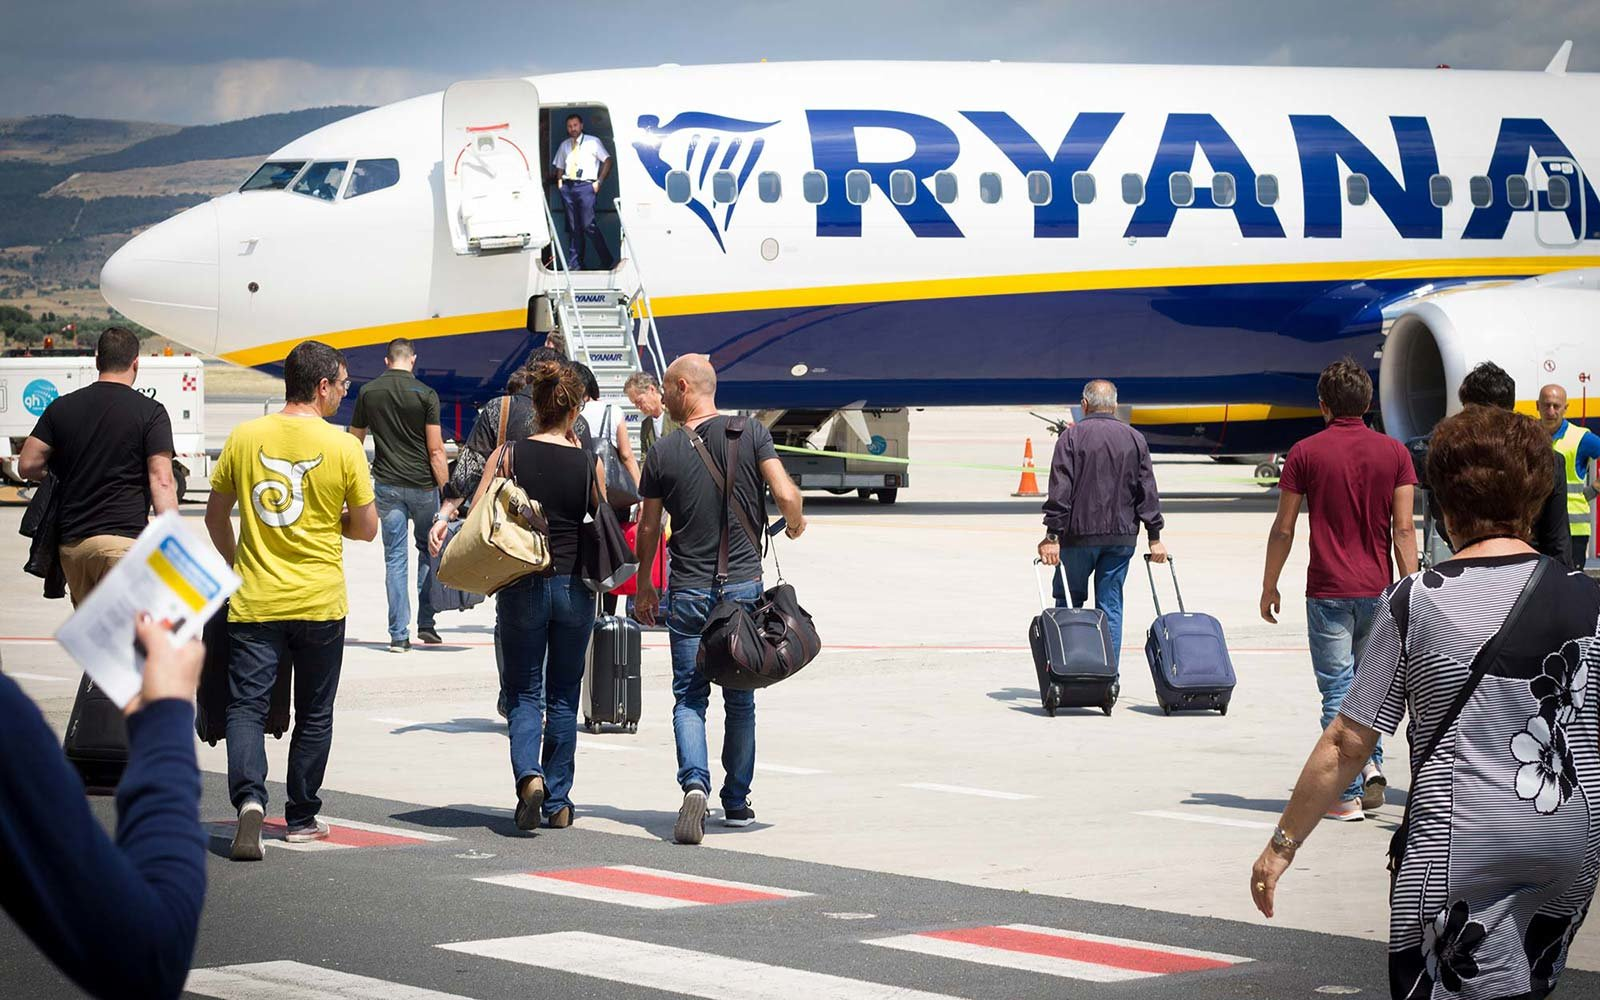 carry-on luggage toward a Ryanair airplane